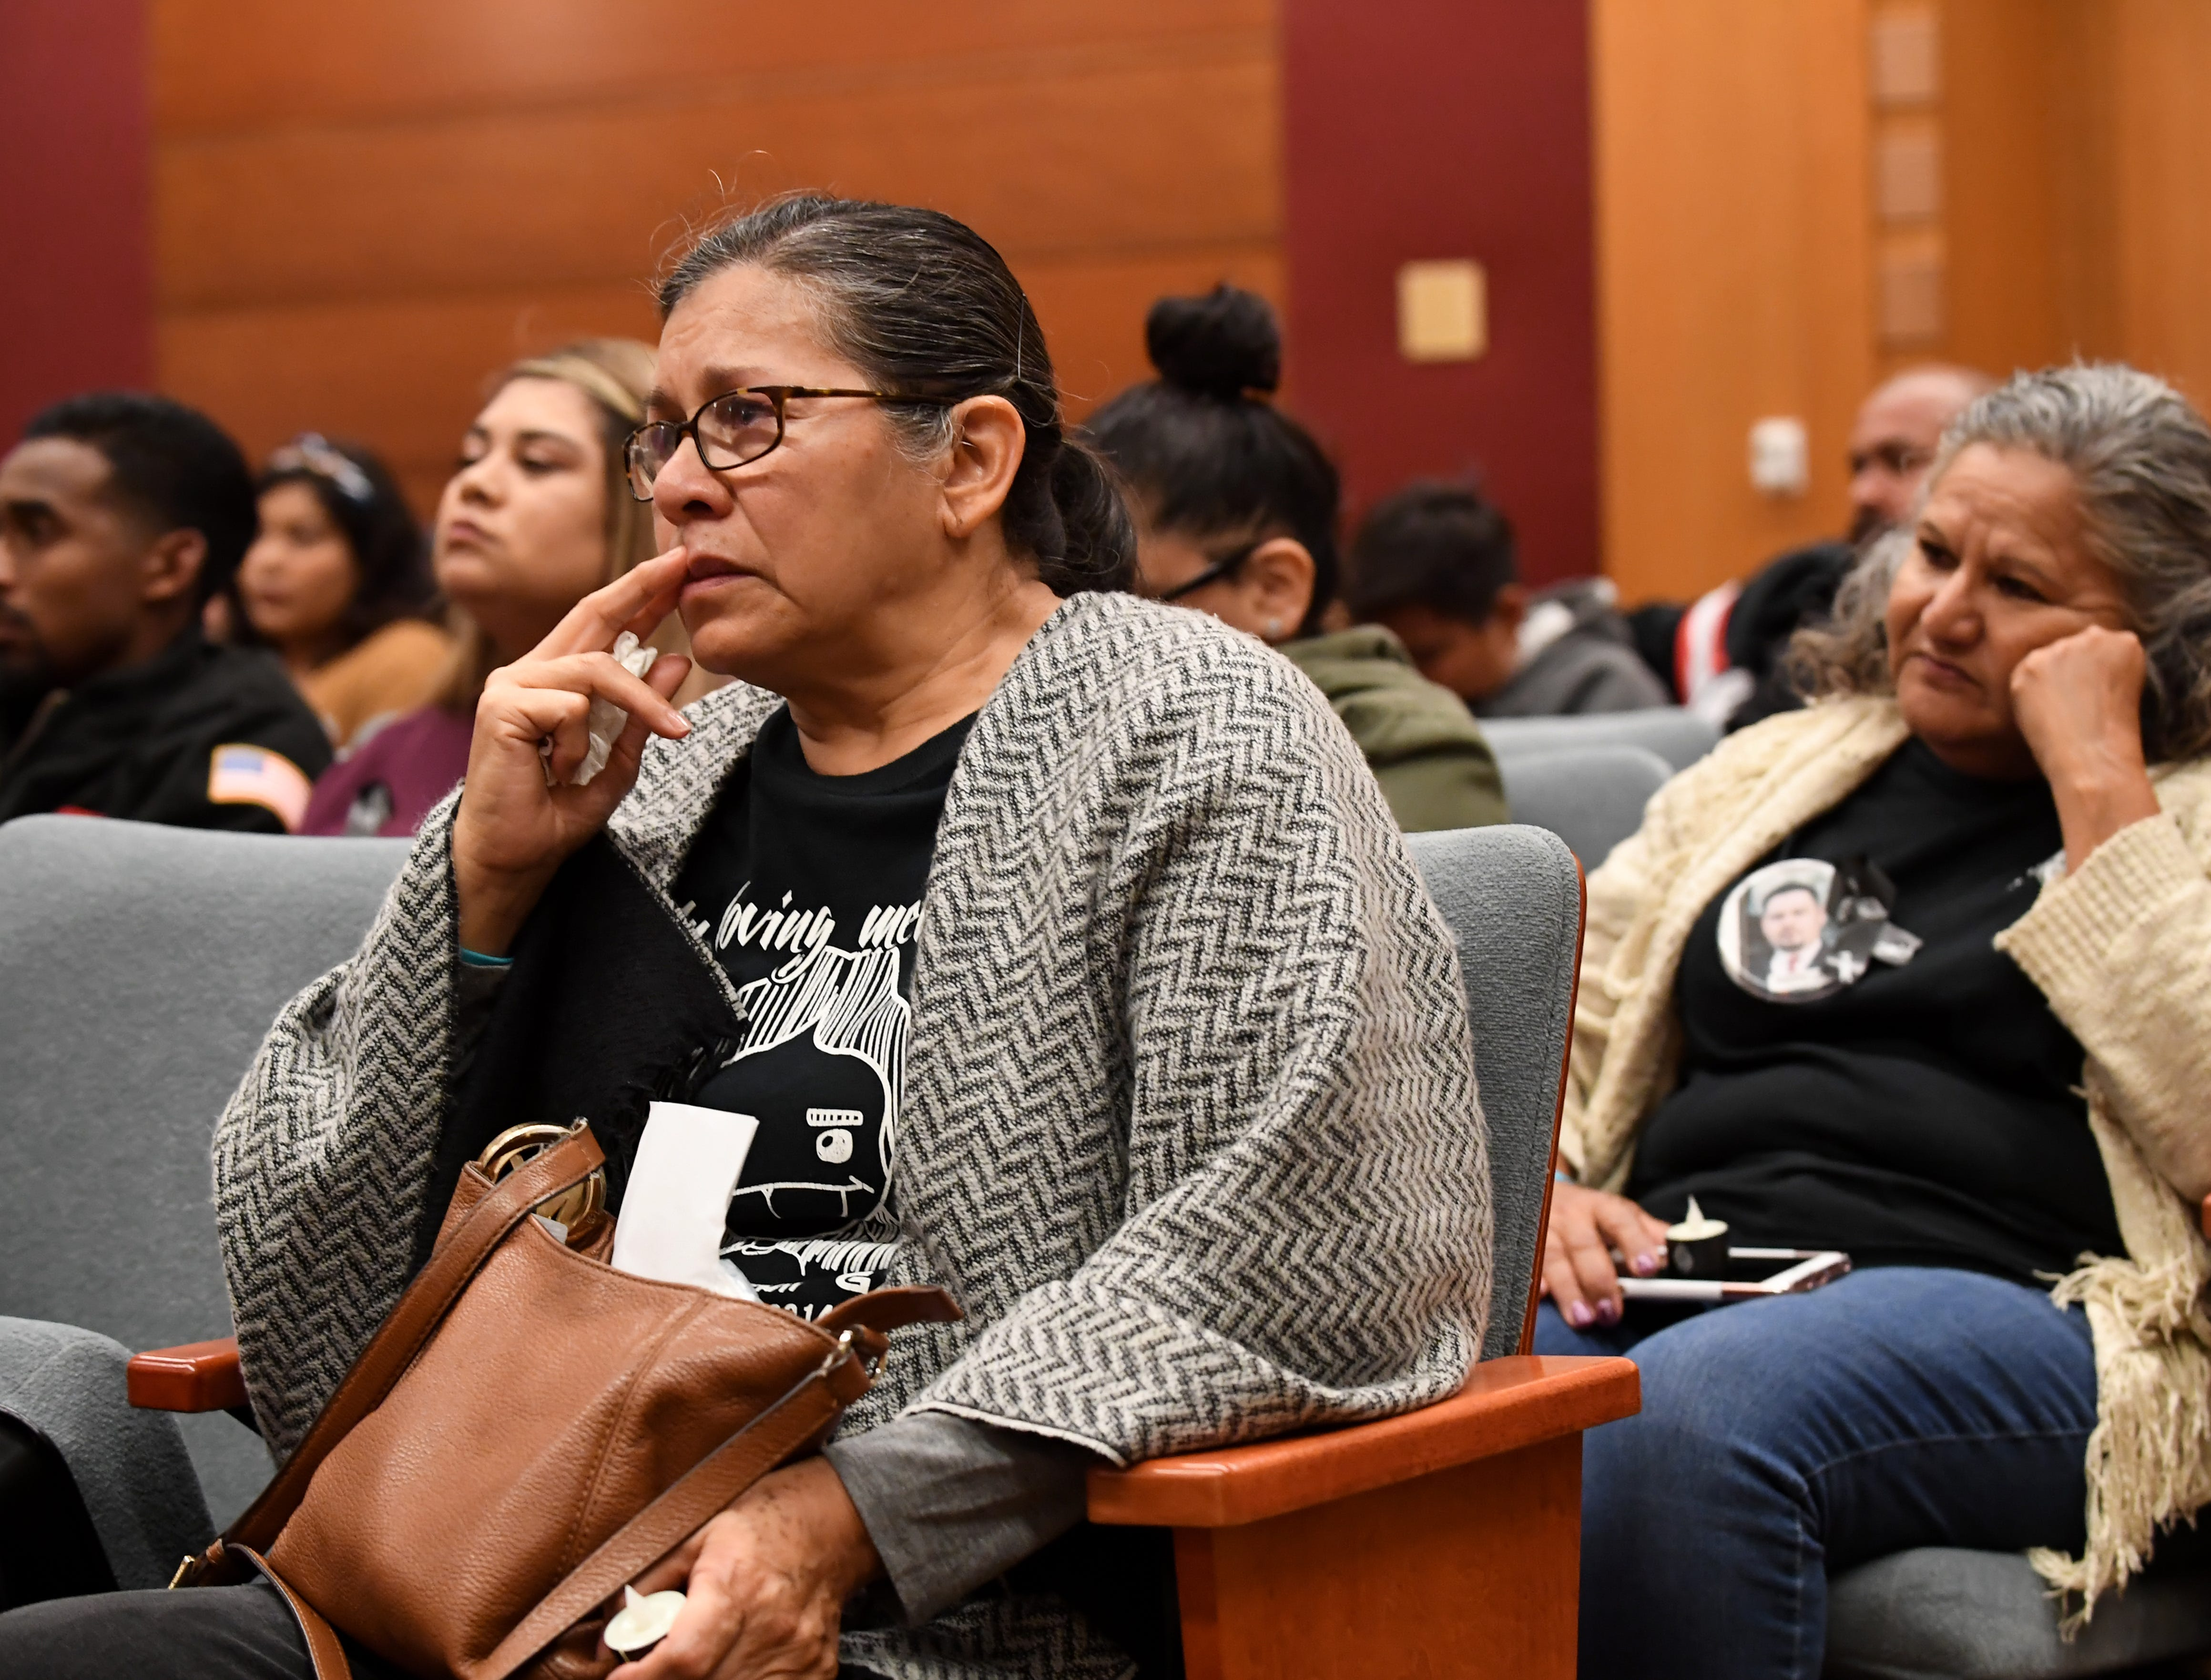 Maria Rodriguez attends the National Day of  Remembrance for Murder Victims on Thursday. Her son was killed in a hit-and-run at Natividad Road and Los Coches Avenue in 2014.